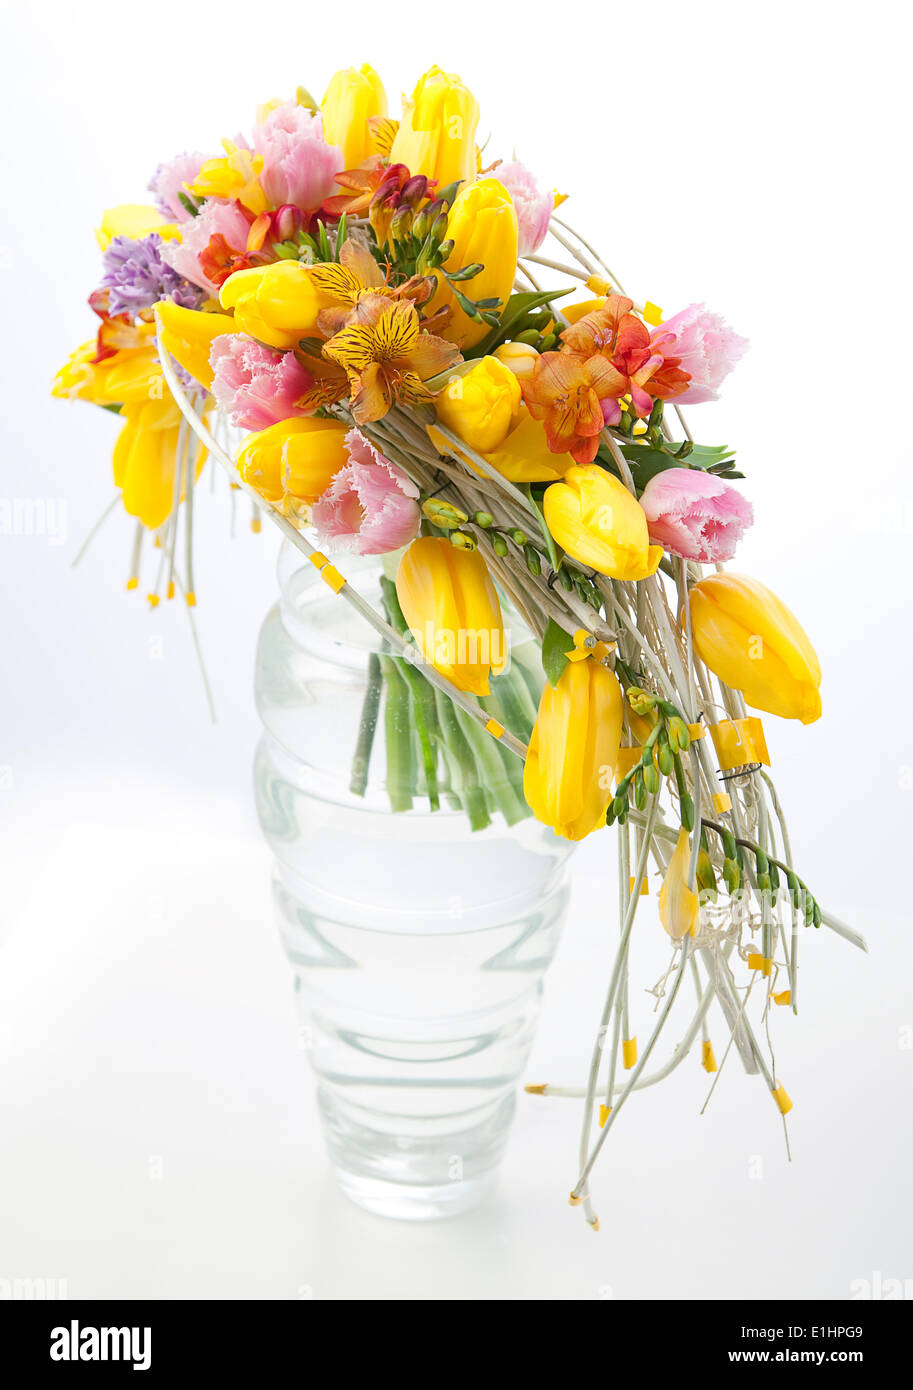 Floristry - colorful flower bouquet arrangement centerpiece in transparent vase isolated on white background - Stock Image